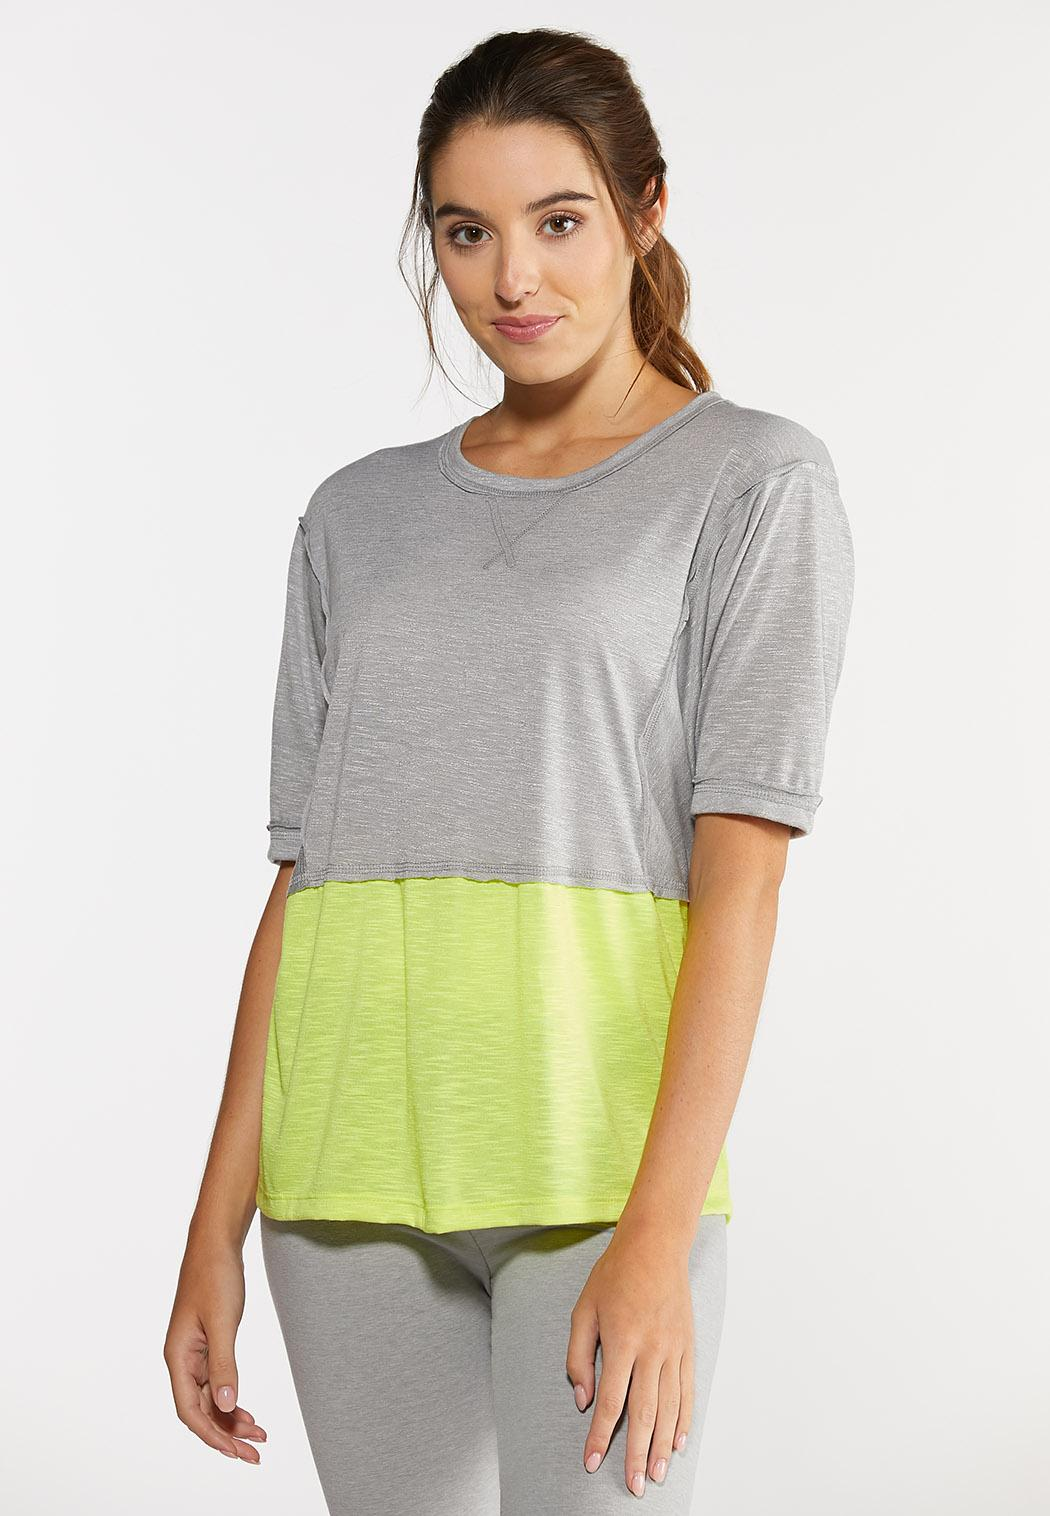 Plus Size Colorblock Athleisure Tee